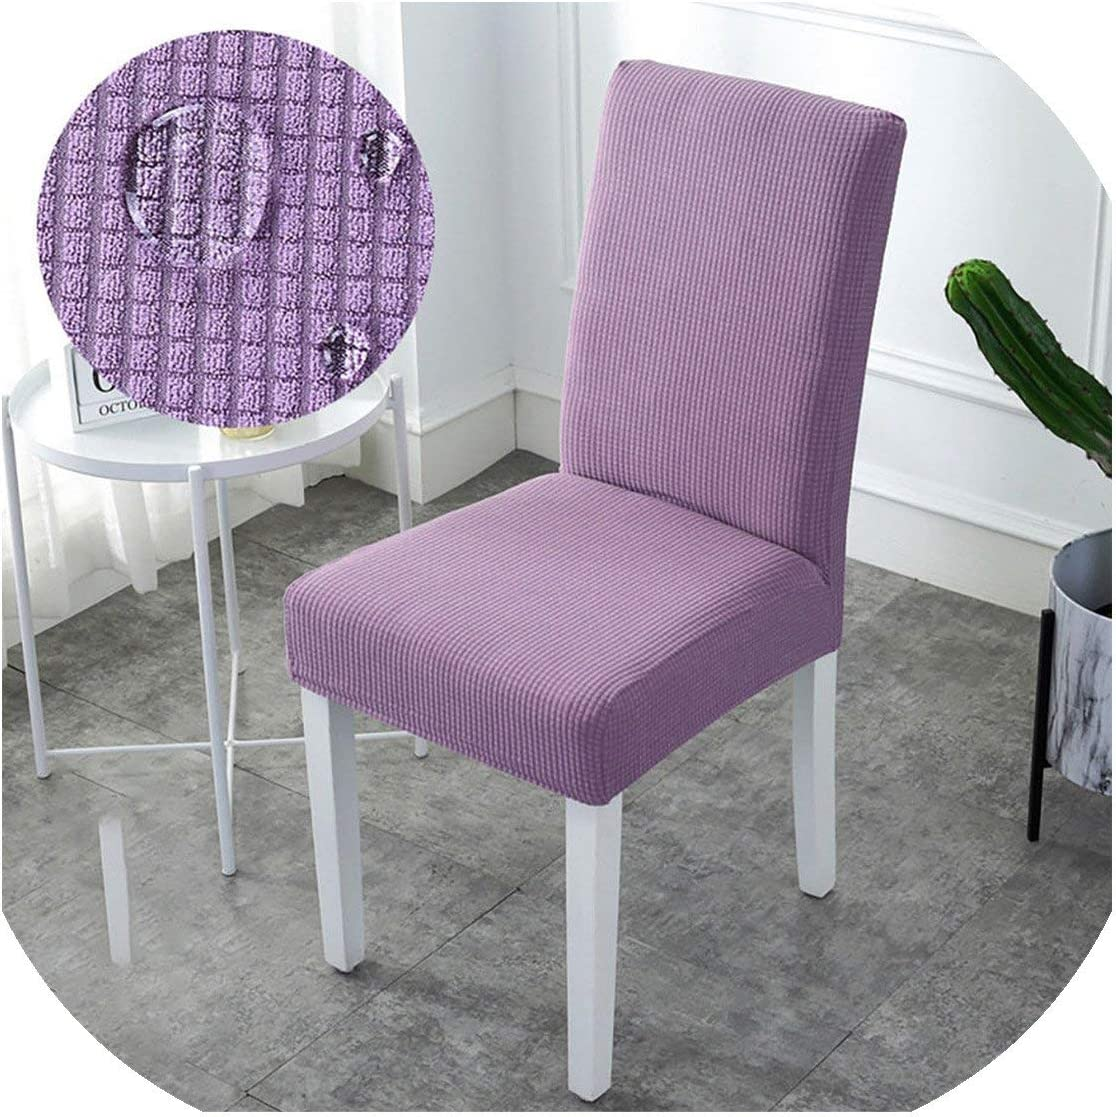 shop 1994 Super Soft Jacquard Fabric Short Term Waterproof Stretch Chair Cover Elastic Spandex Seat Chair Cover for Dining Room/Kitchen,Violet,Universal Sizes